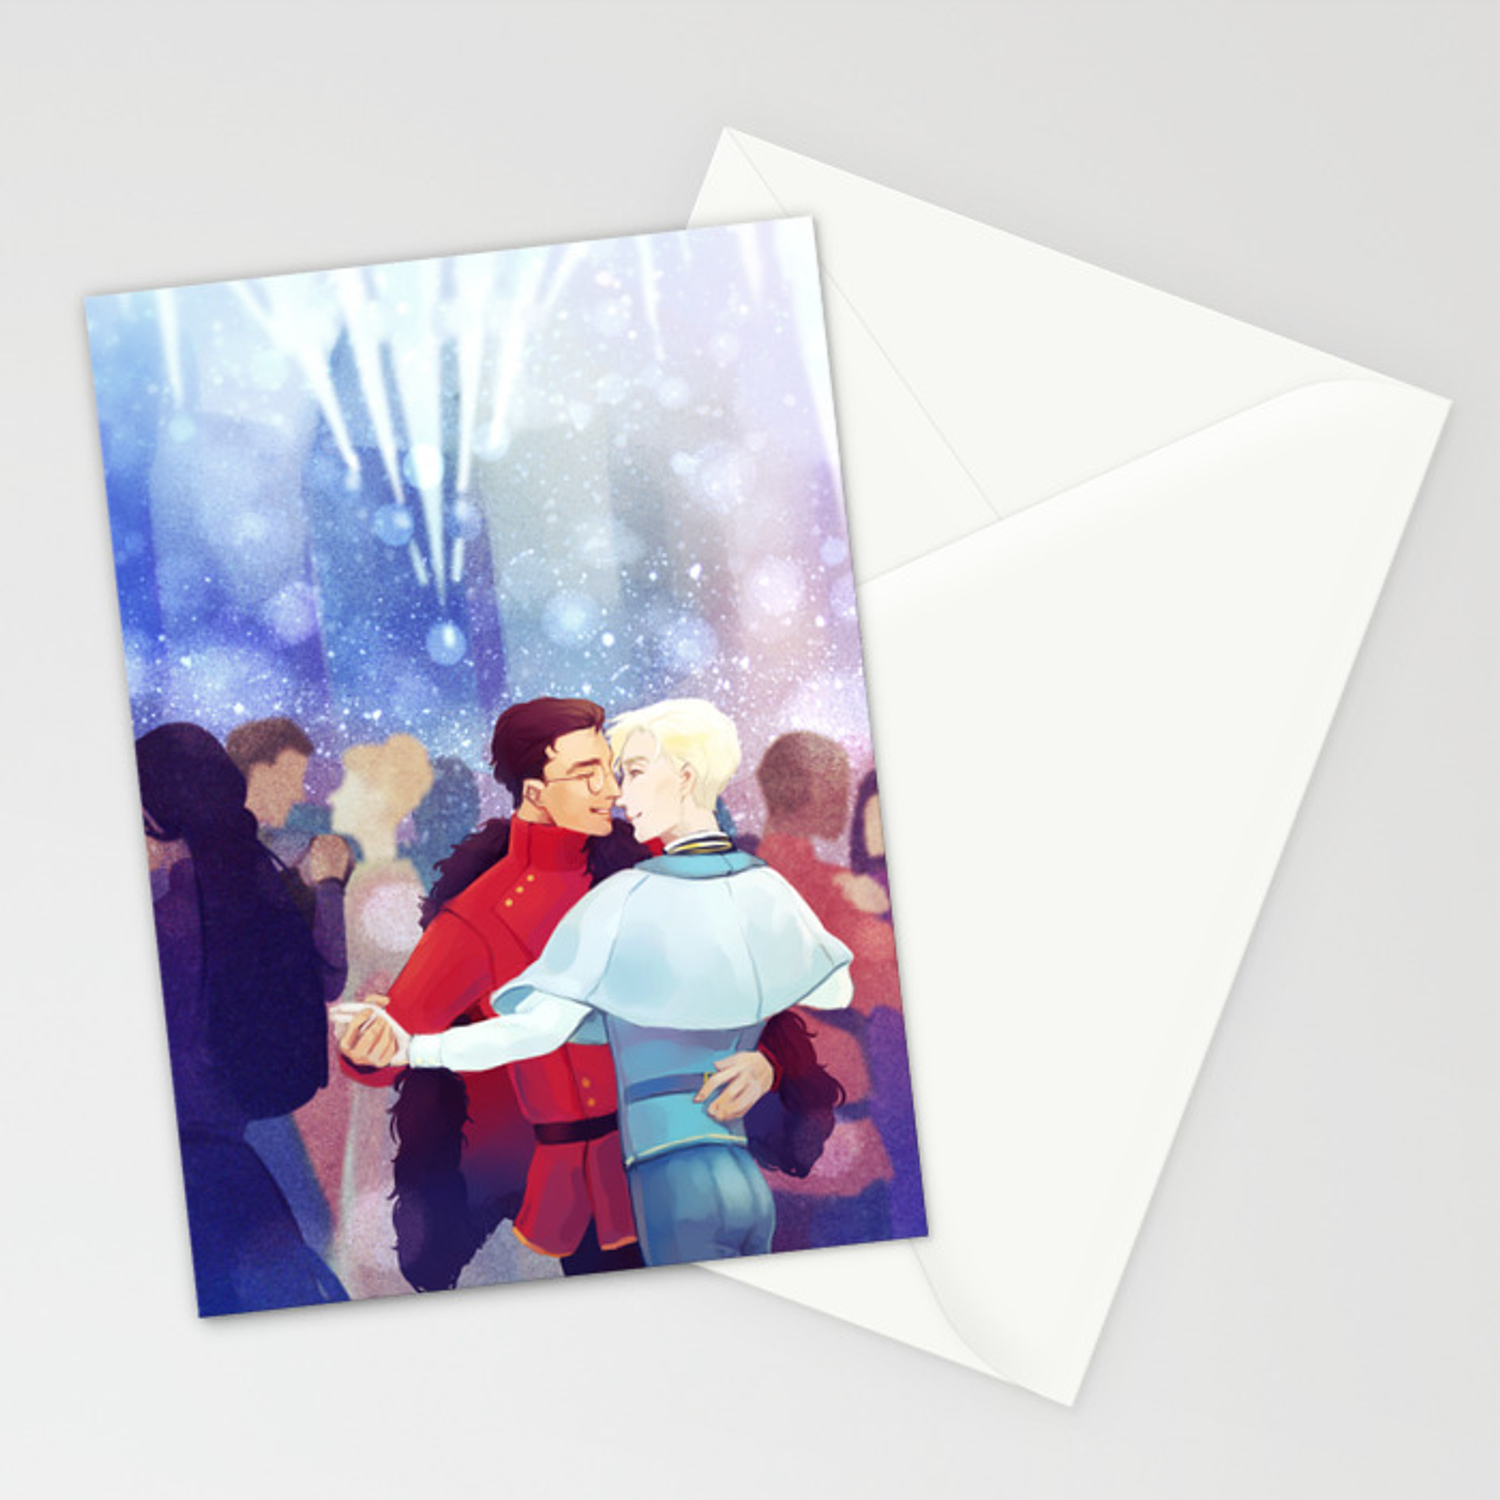 Durmstrang And Beauxbaton Dance Stationery Cards By Convallarias Society6 648 x 471 jpeg 116 кб. durmstrang and beauxbaton dance stationery cards by convallarias